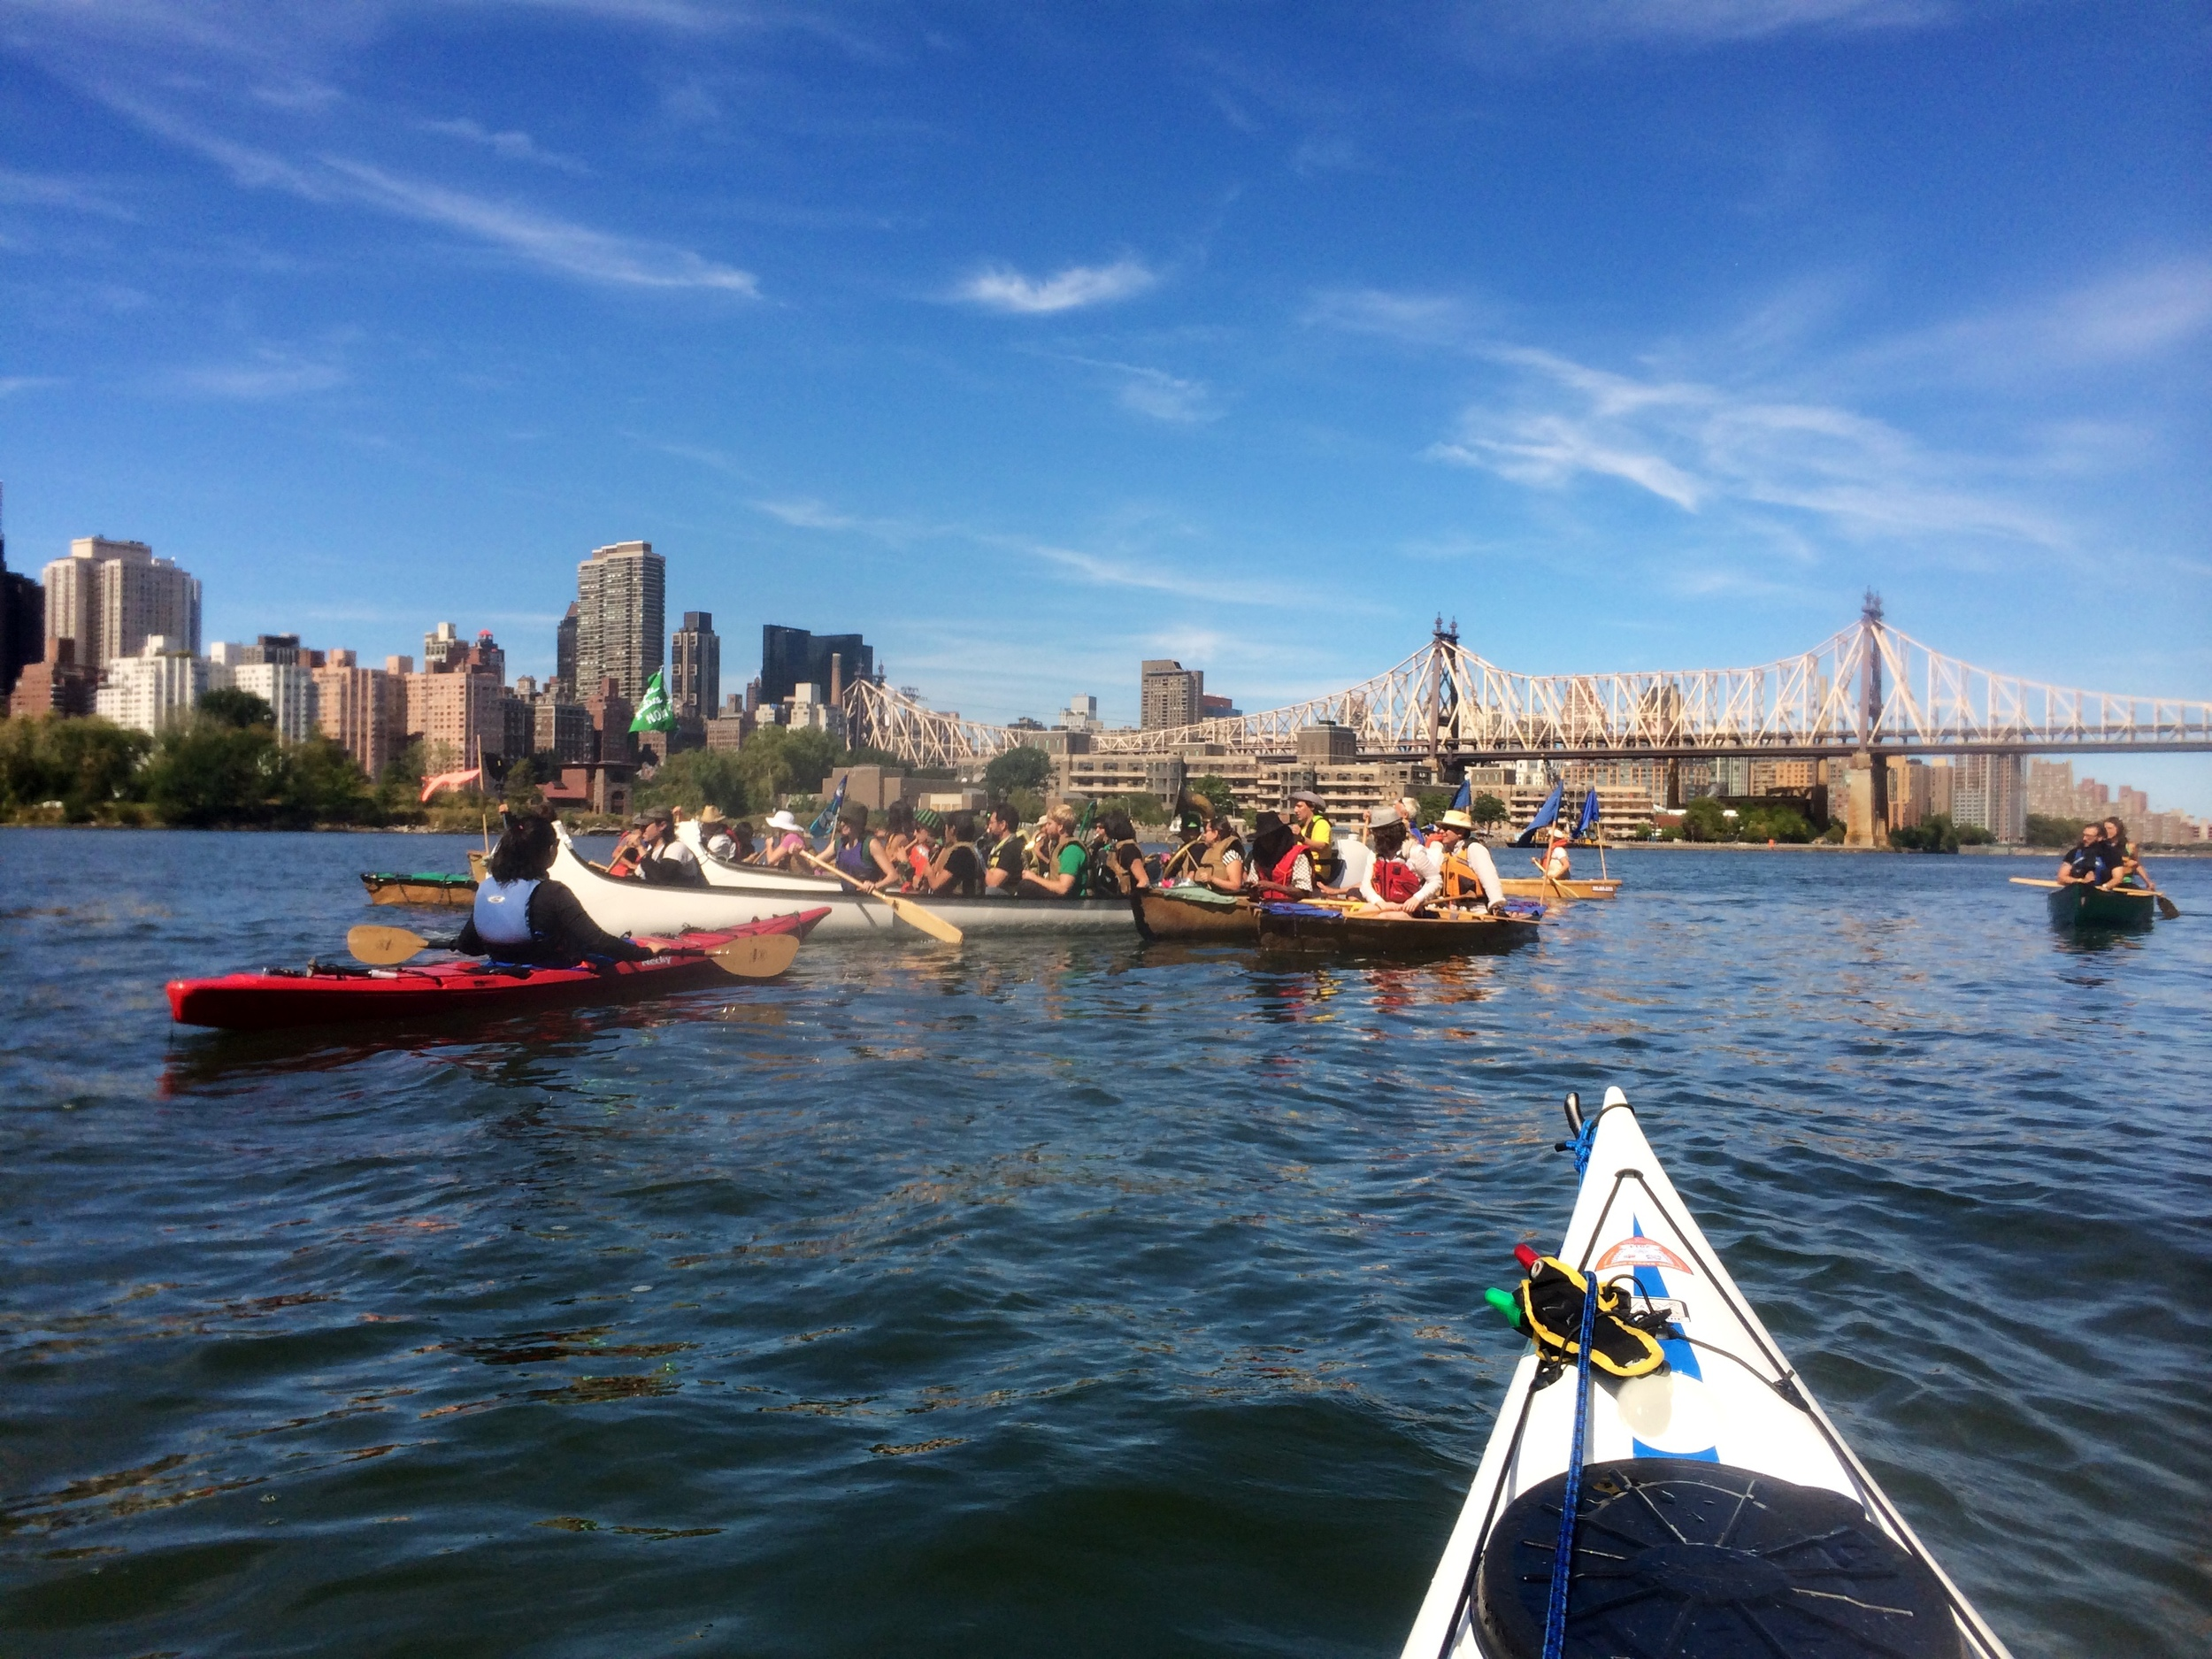 The Rude Mechanical Orchestra plays on canoes in the East River - photo by Stephen Wong